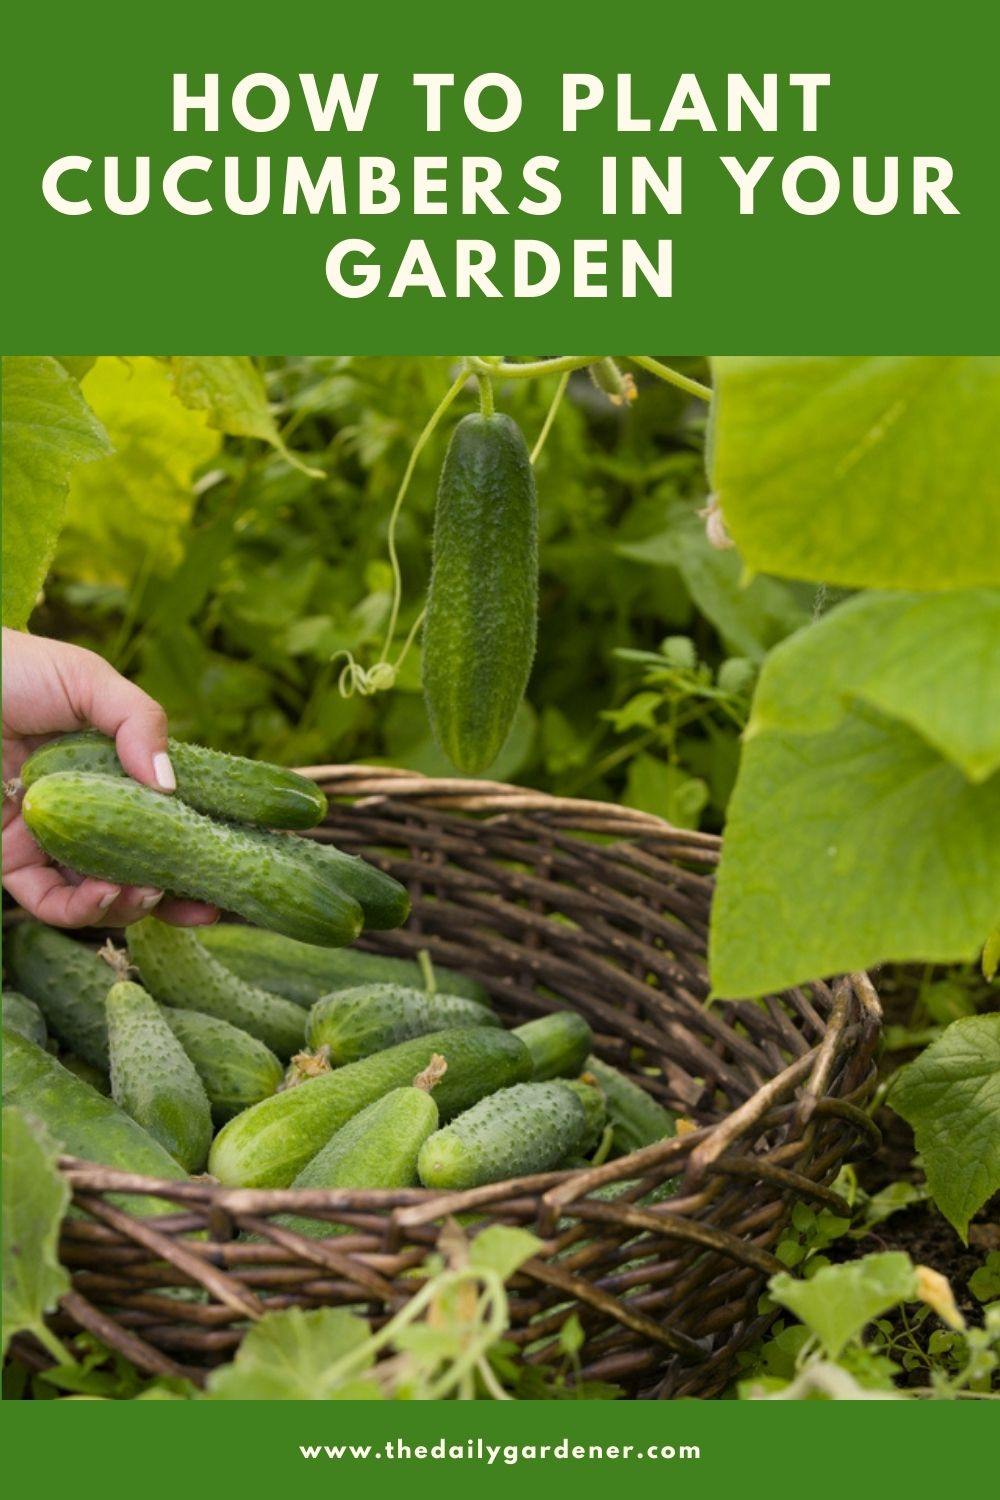 How to Plant Cucumbers in Your Garden (Tricks to Care!) 2